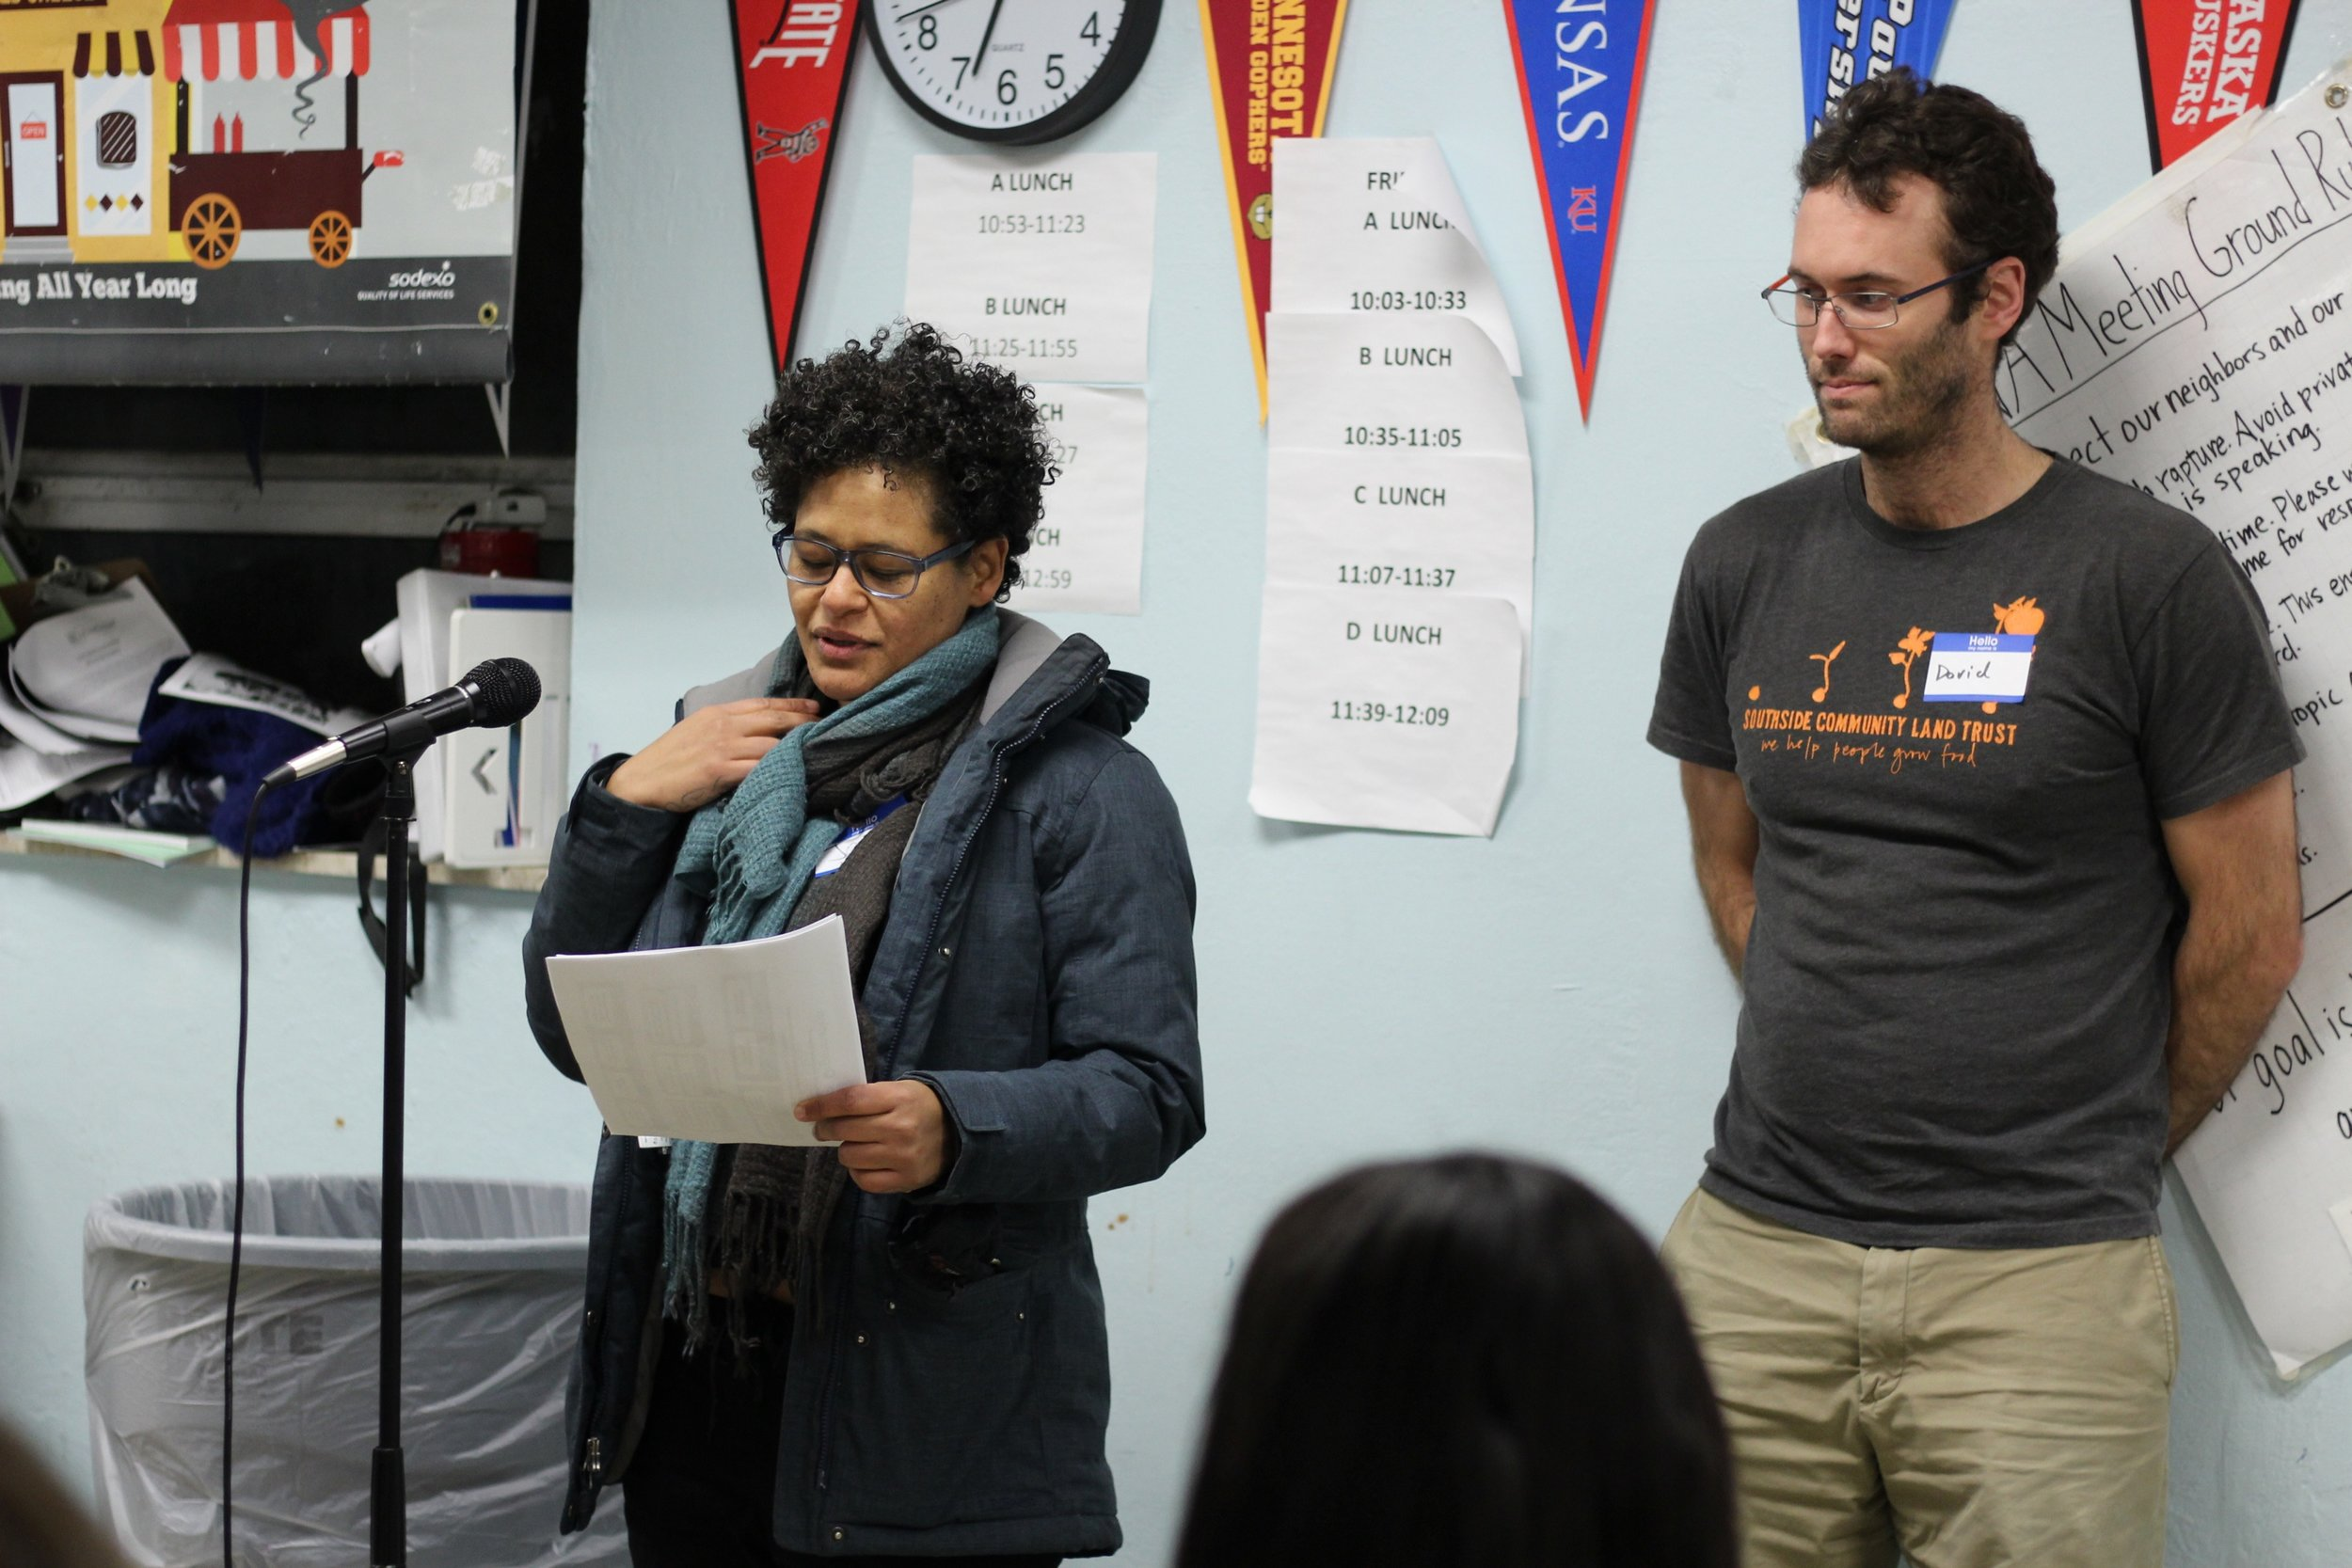 Joann and David of the Community/Comunidad 1 Committee